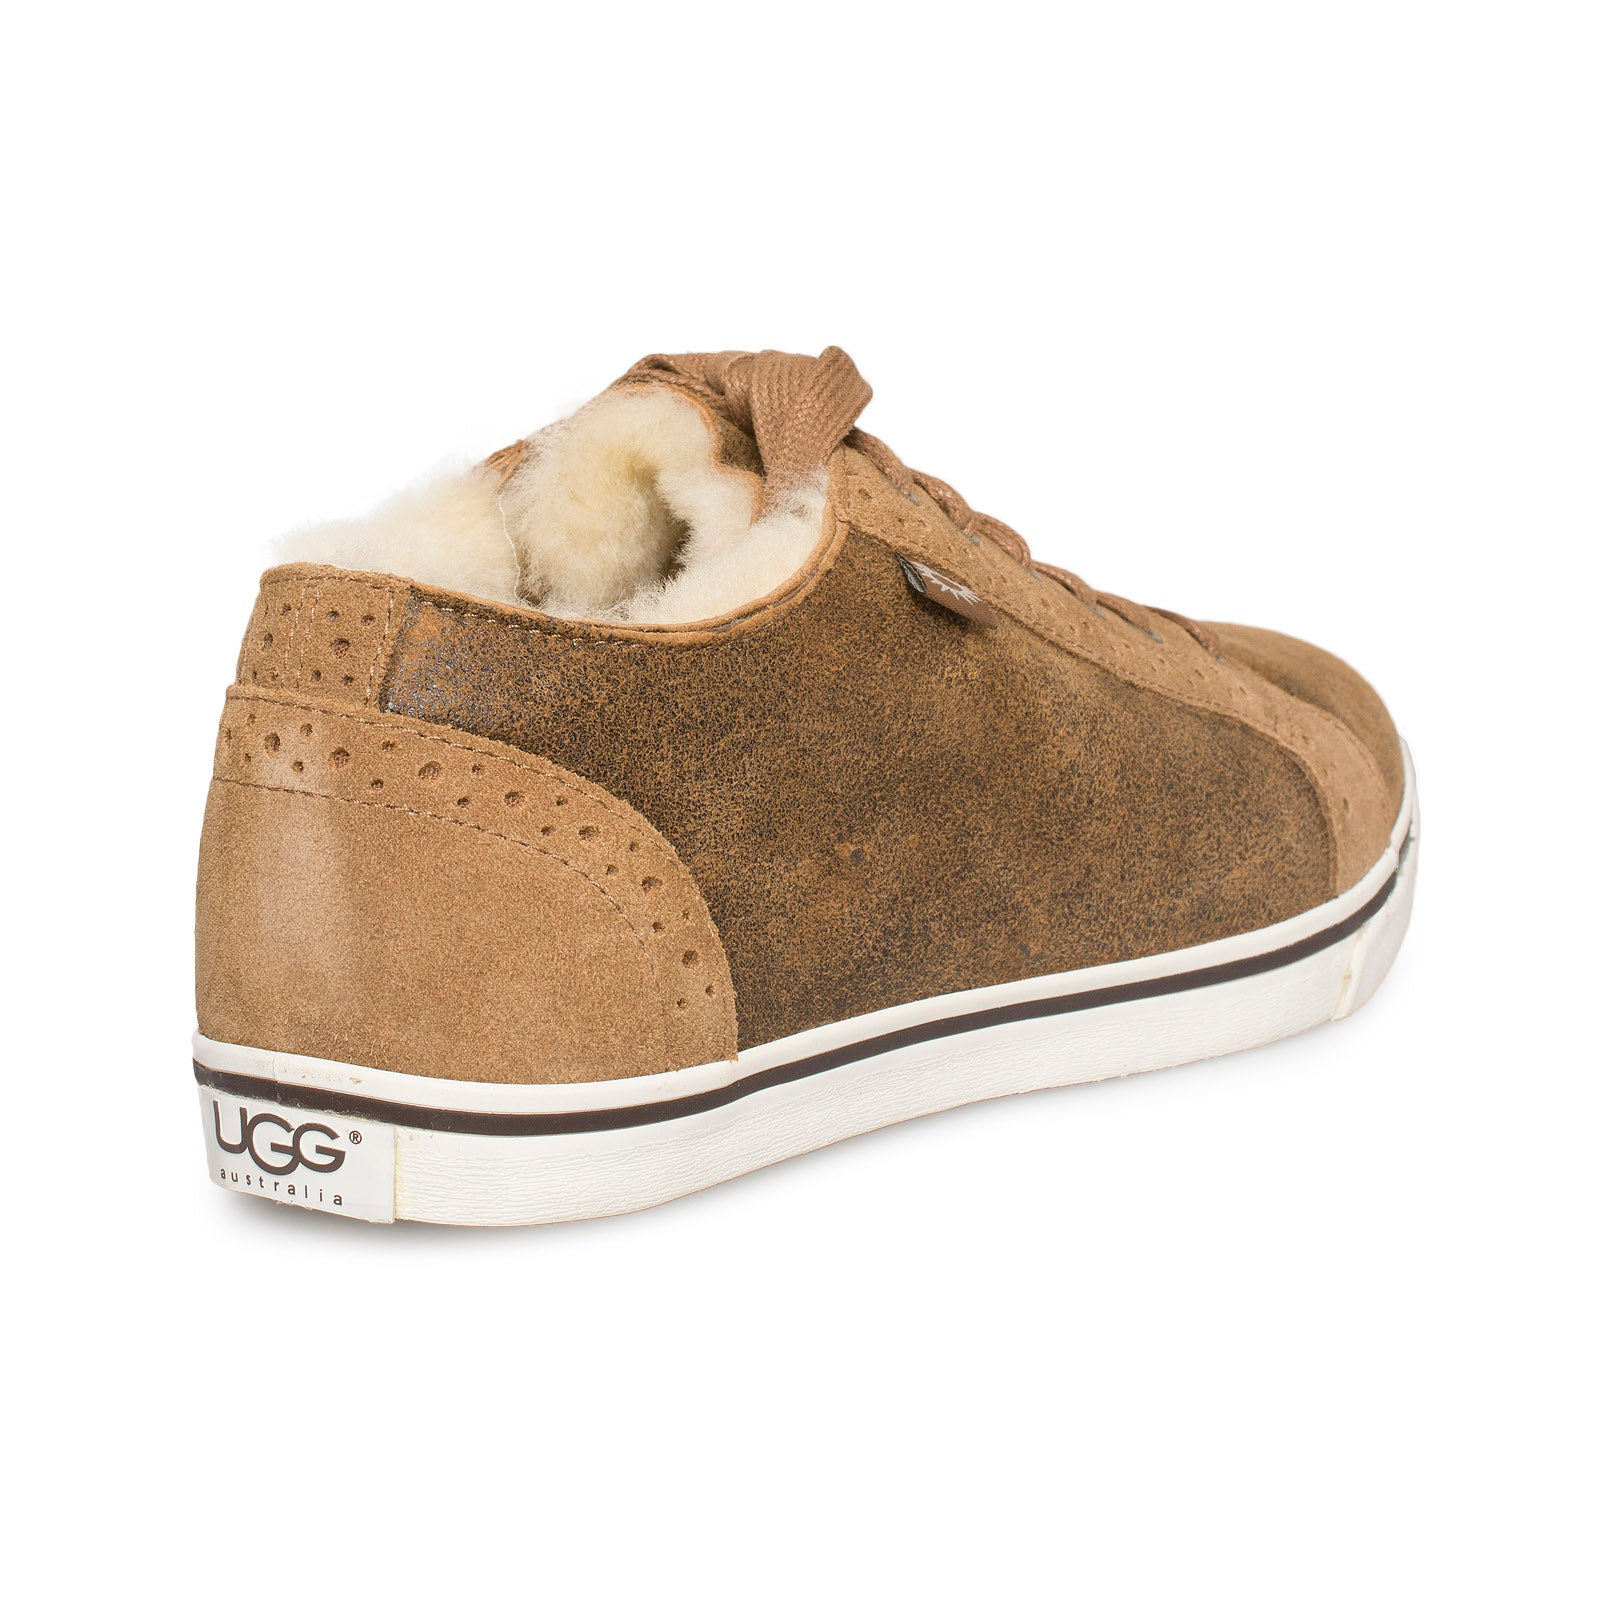 32784b756f4 UGG Roxford Twin Face Bomber Jacket Sneakers - Men's